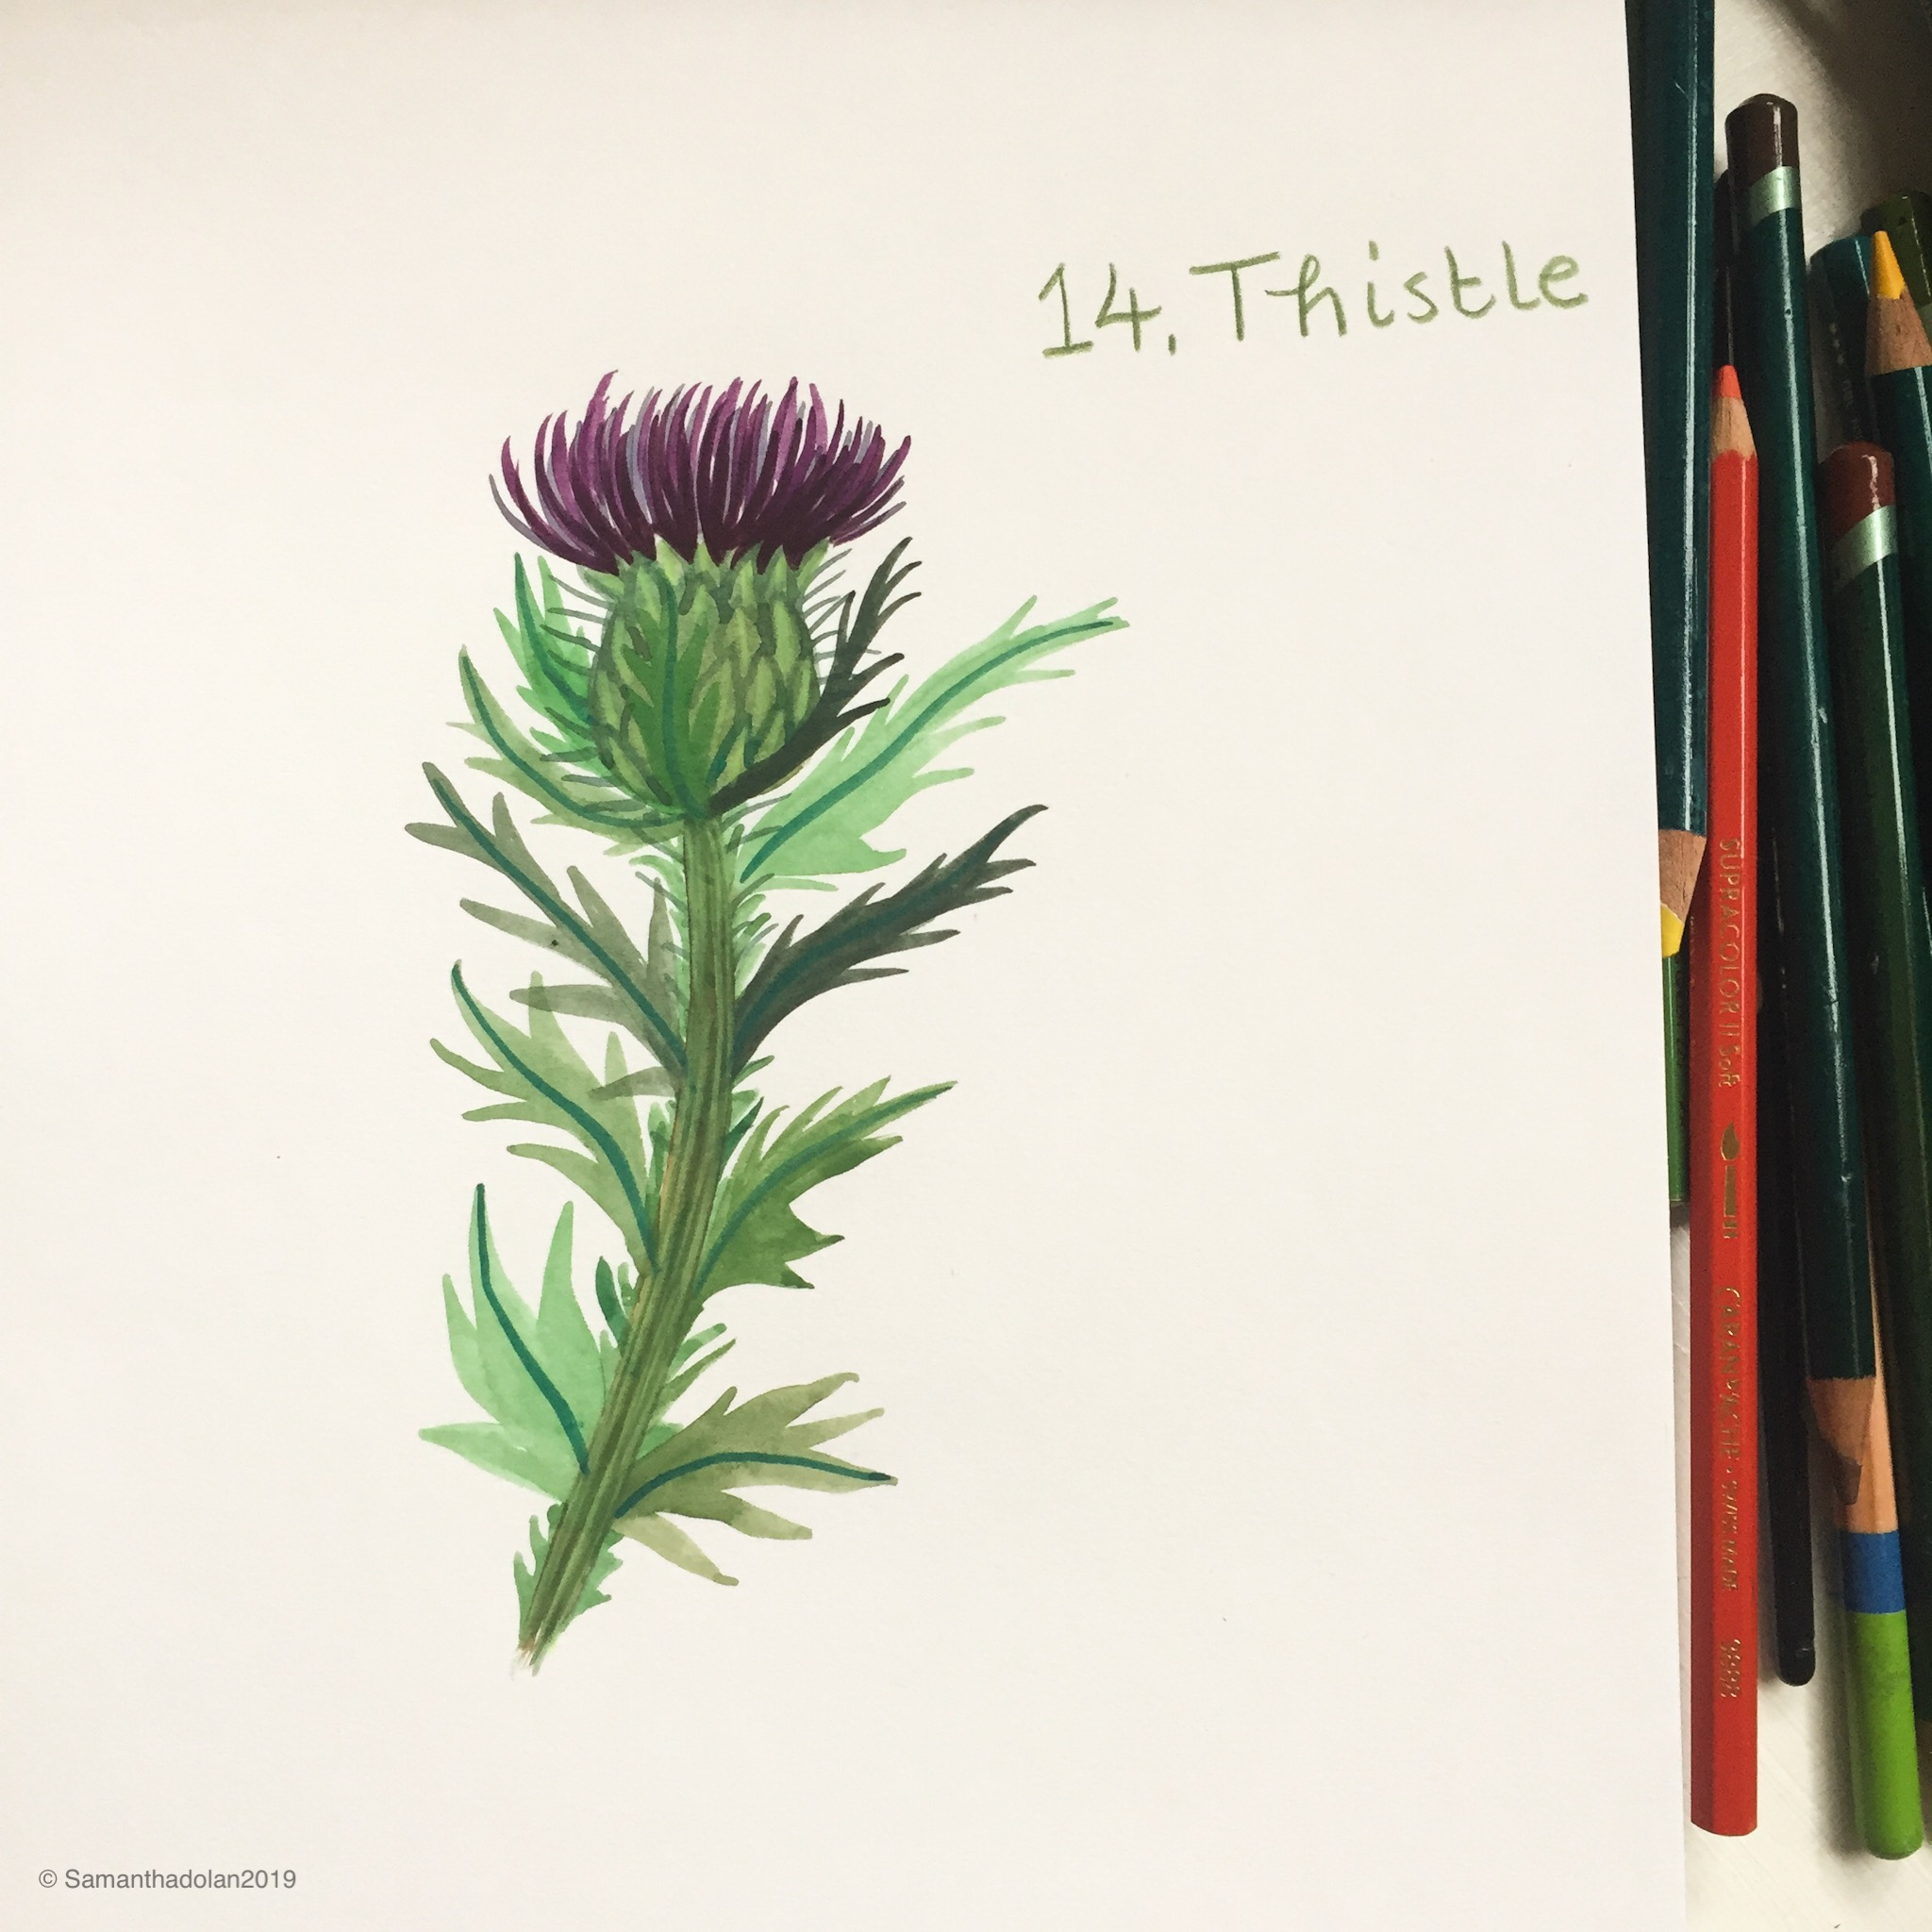 thistle by samantha dolan